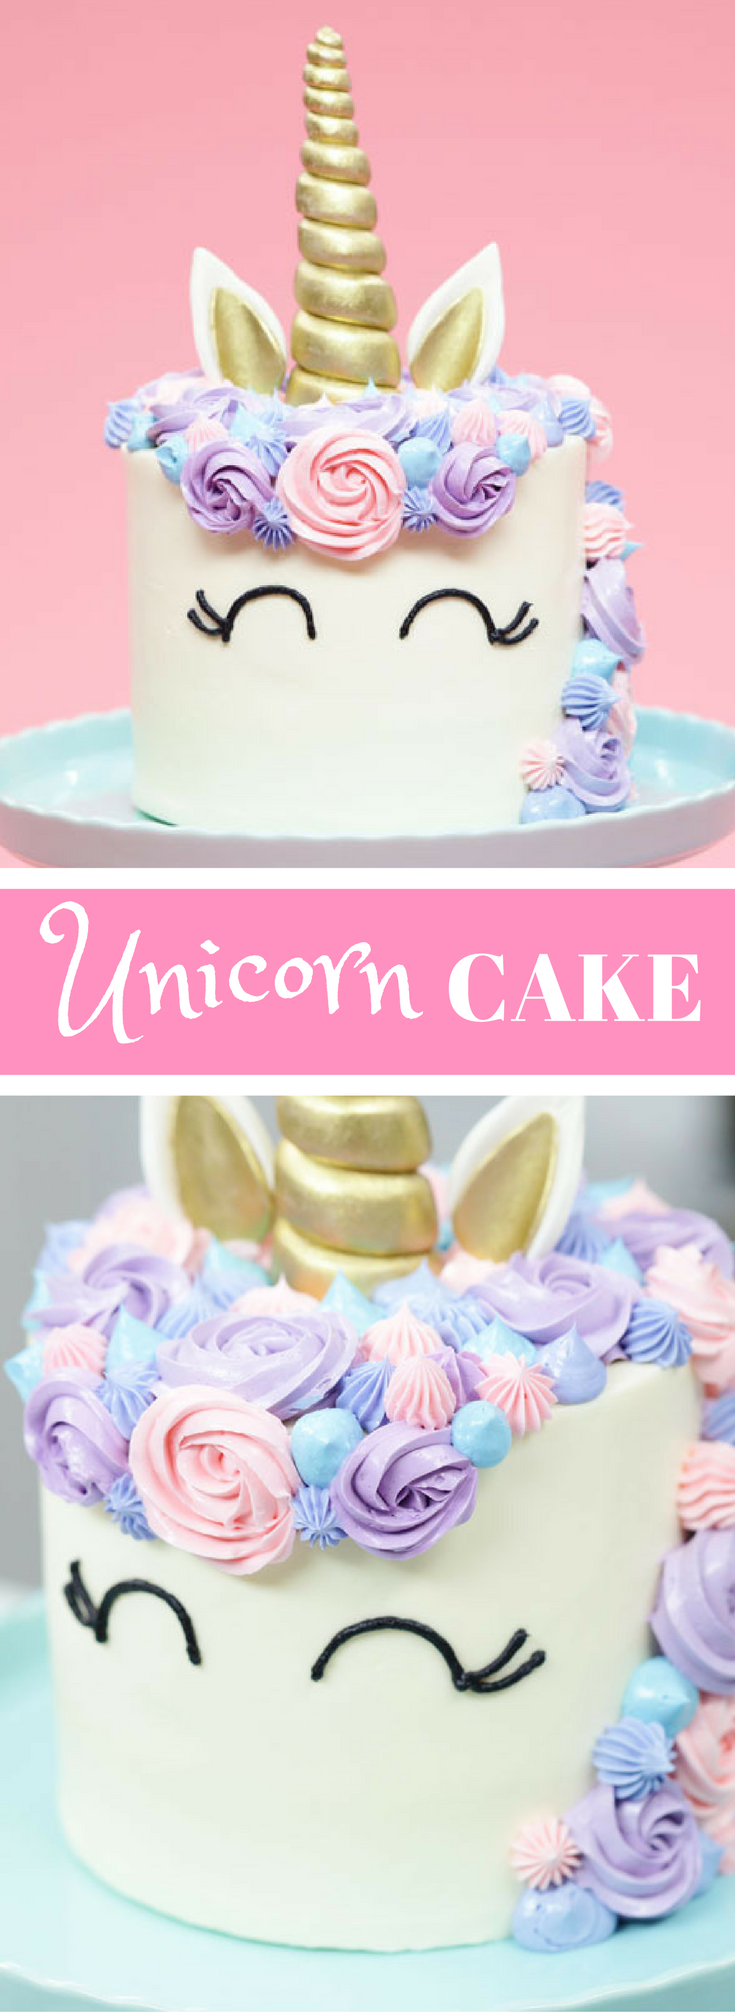 An Easy Funfetti Unicorn Cake Recipe Adorned In Pastel Buttercream And Topped With A Golden Horn Makes One 6 Inch